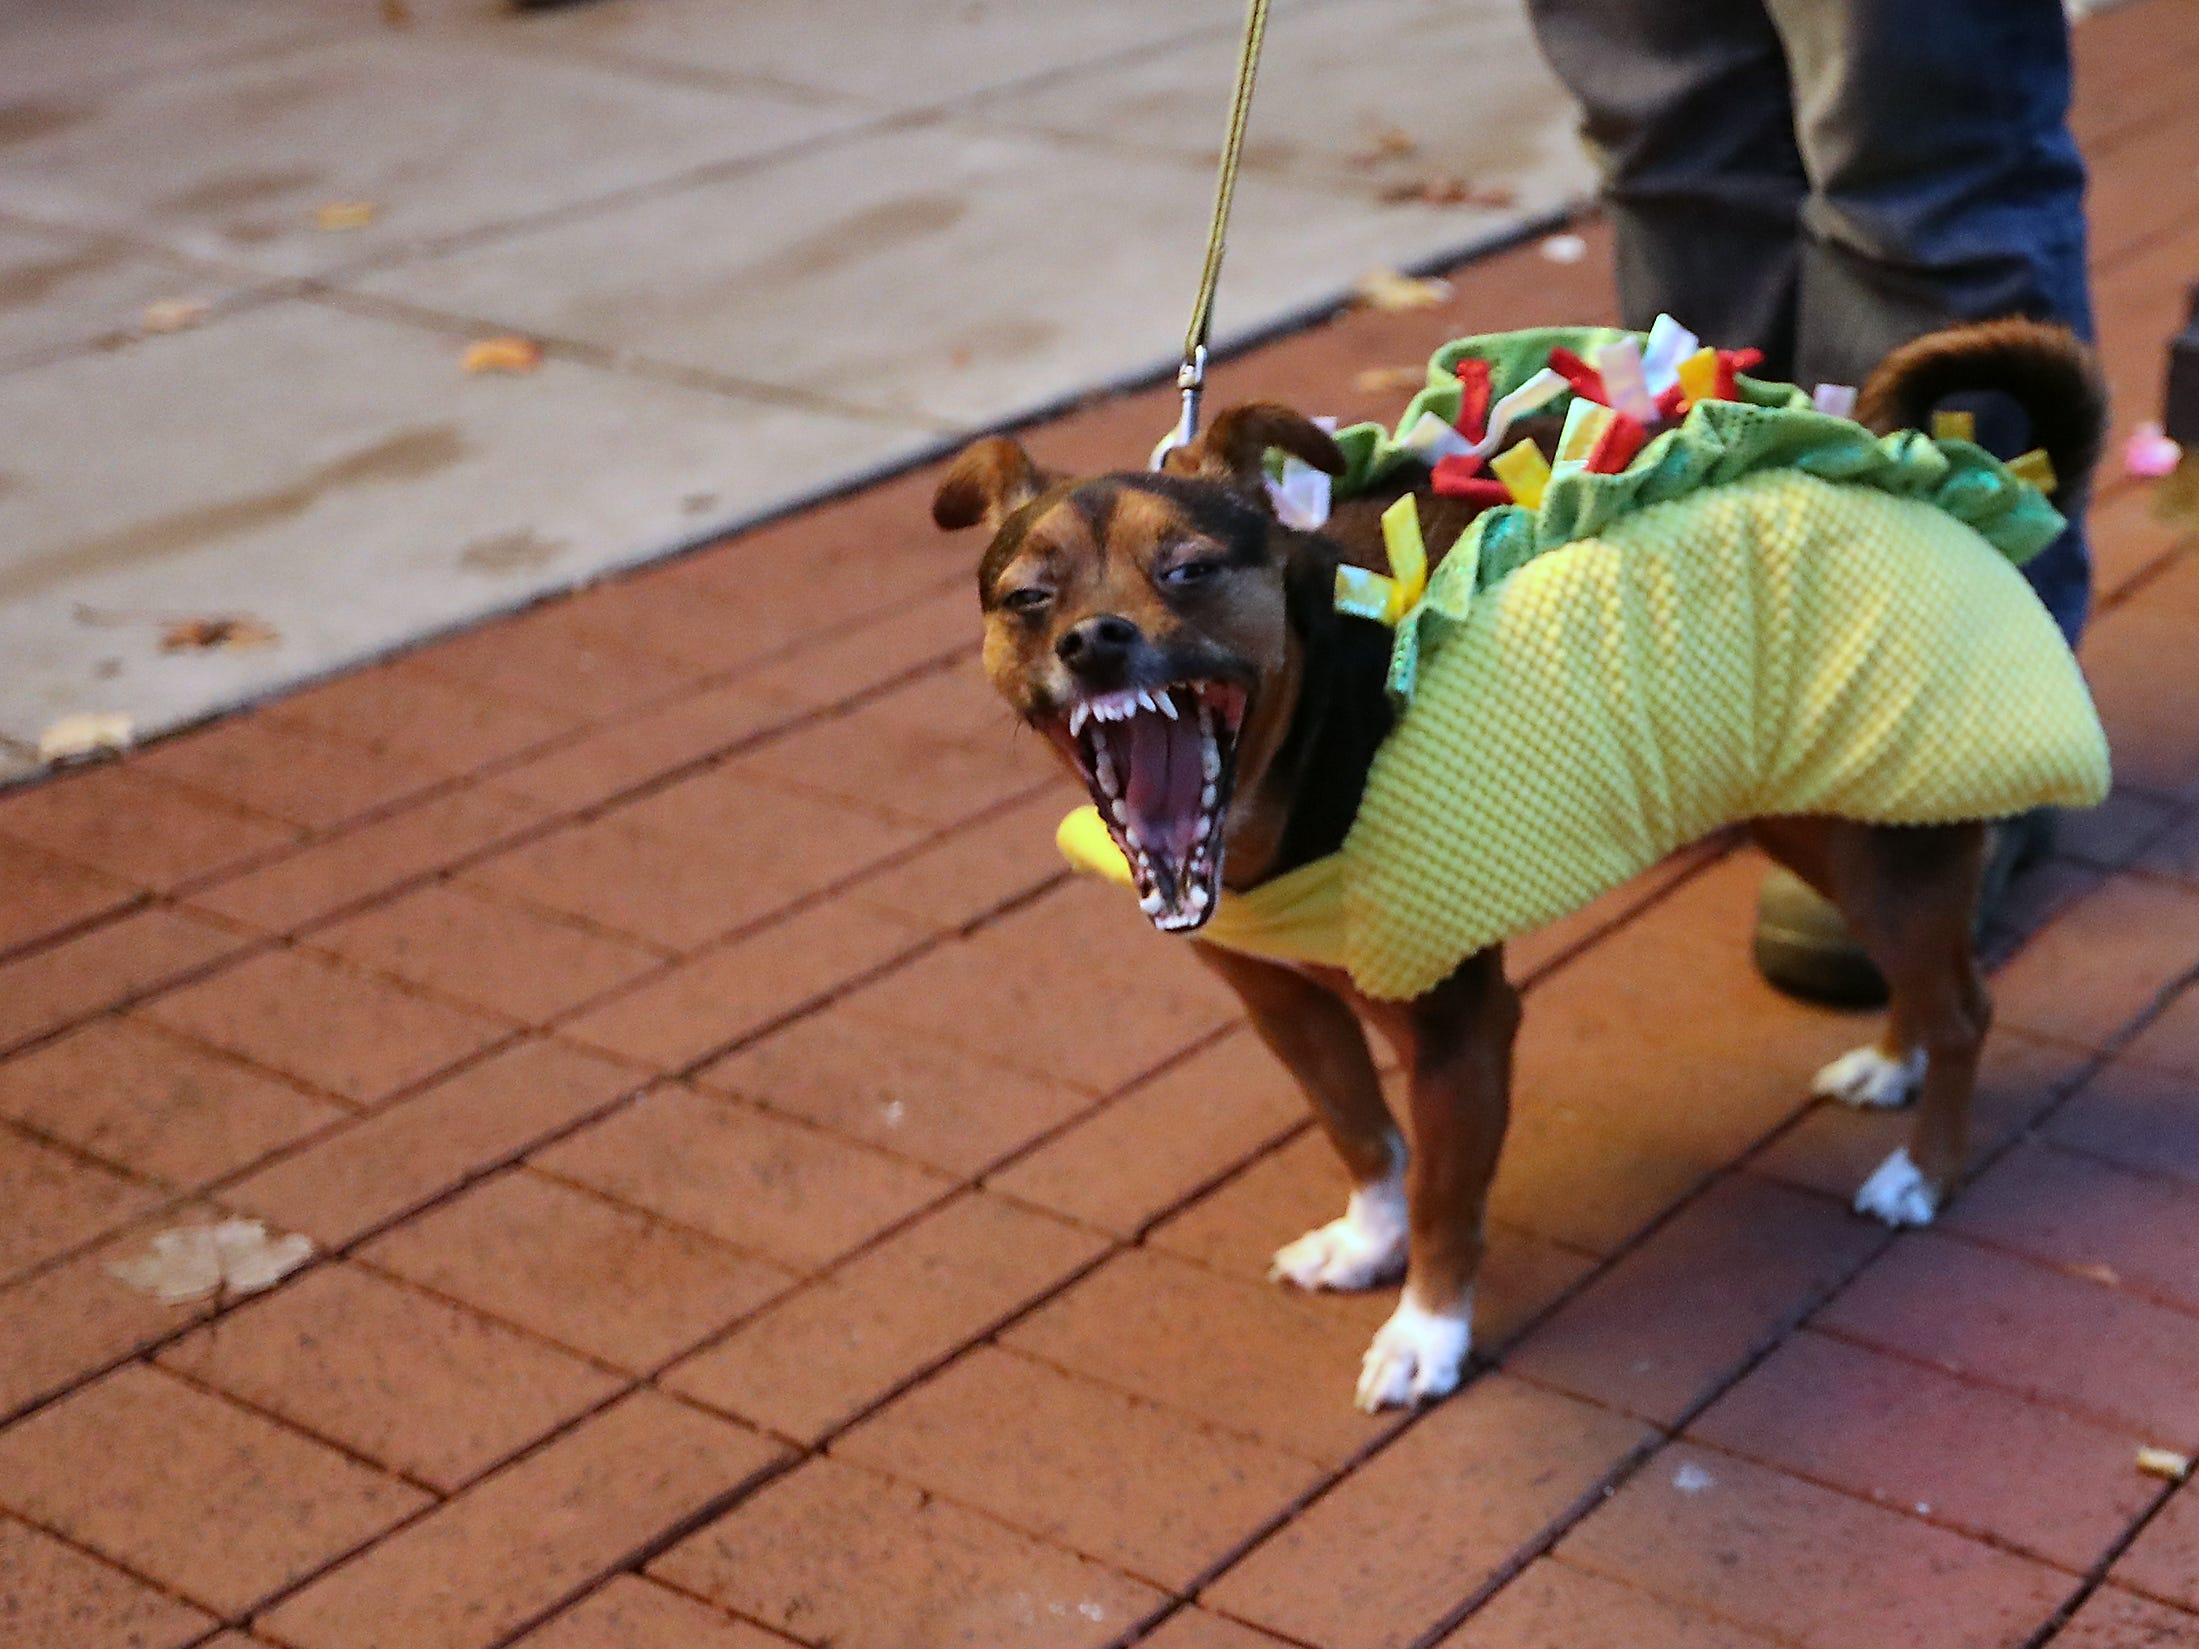 A dog dressed as a taco gives a big yawn during Downtown Bremerton's Trick or Treat Street on Wednesday, October 31, 2018.